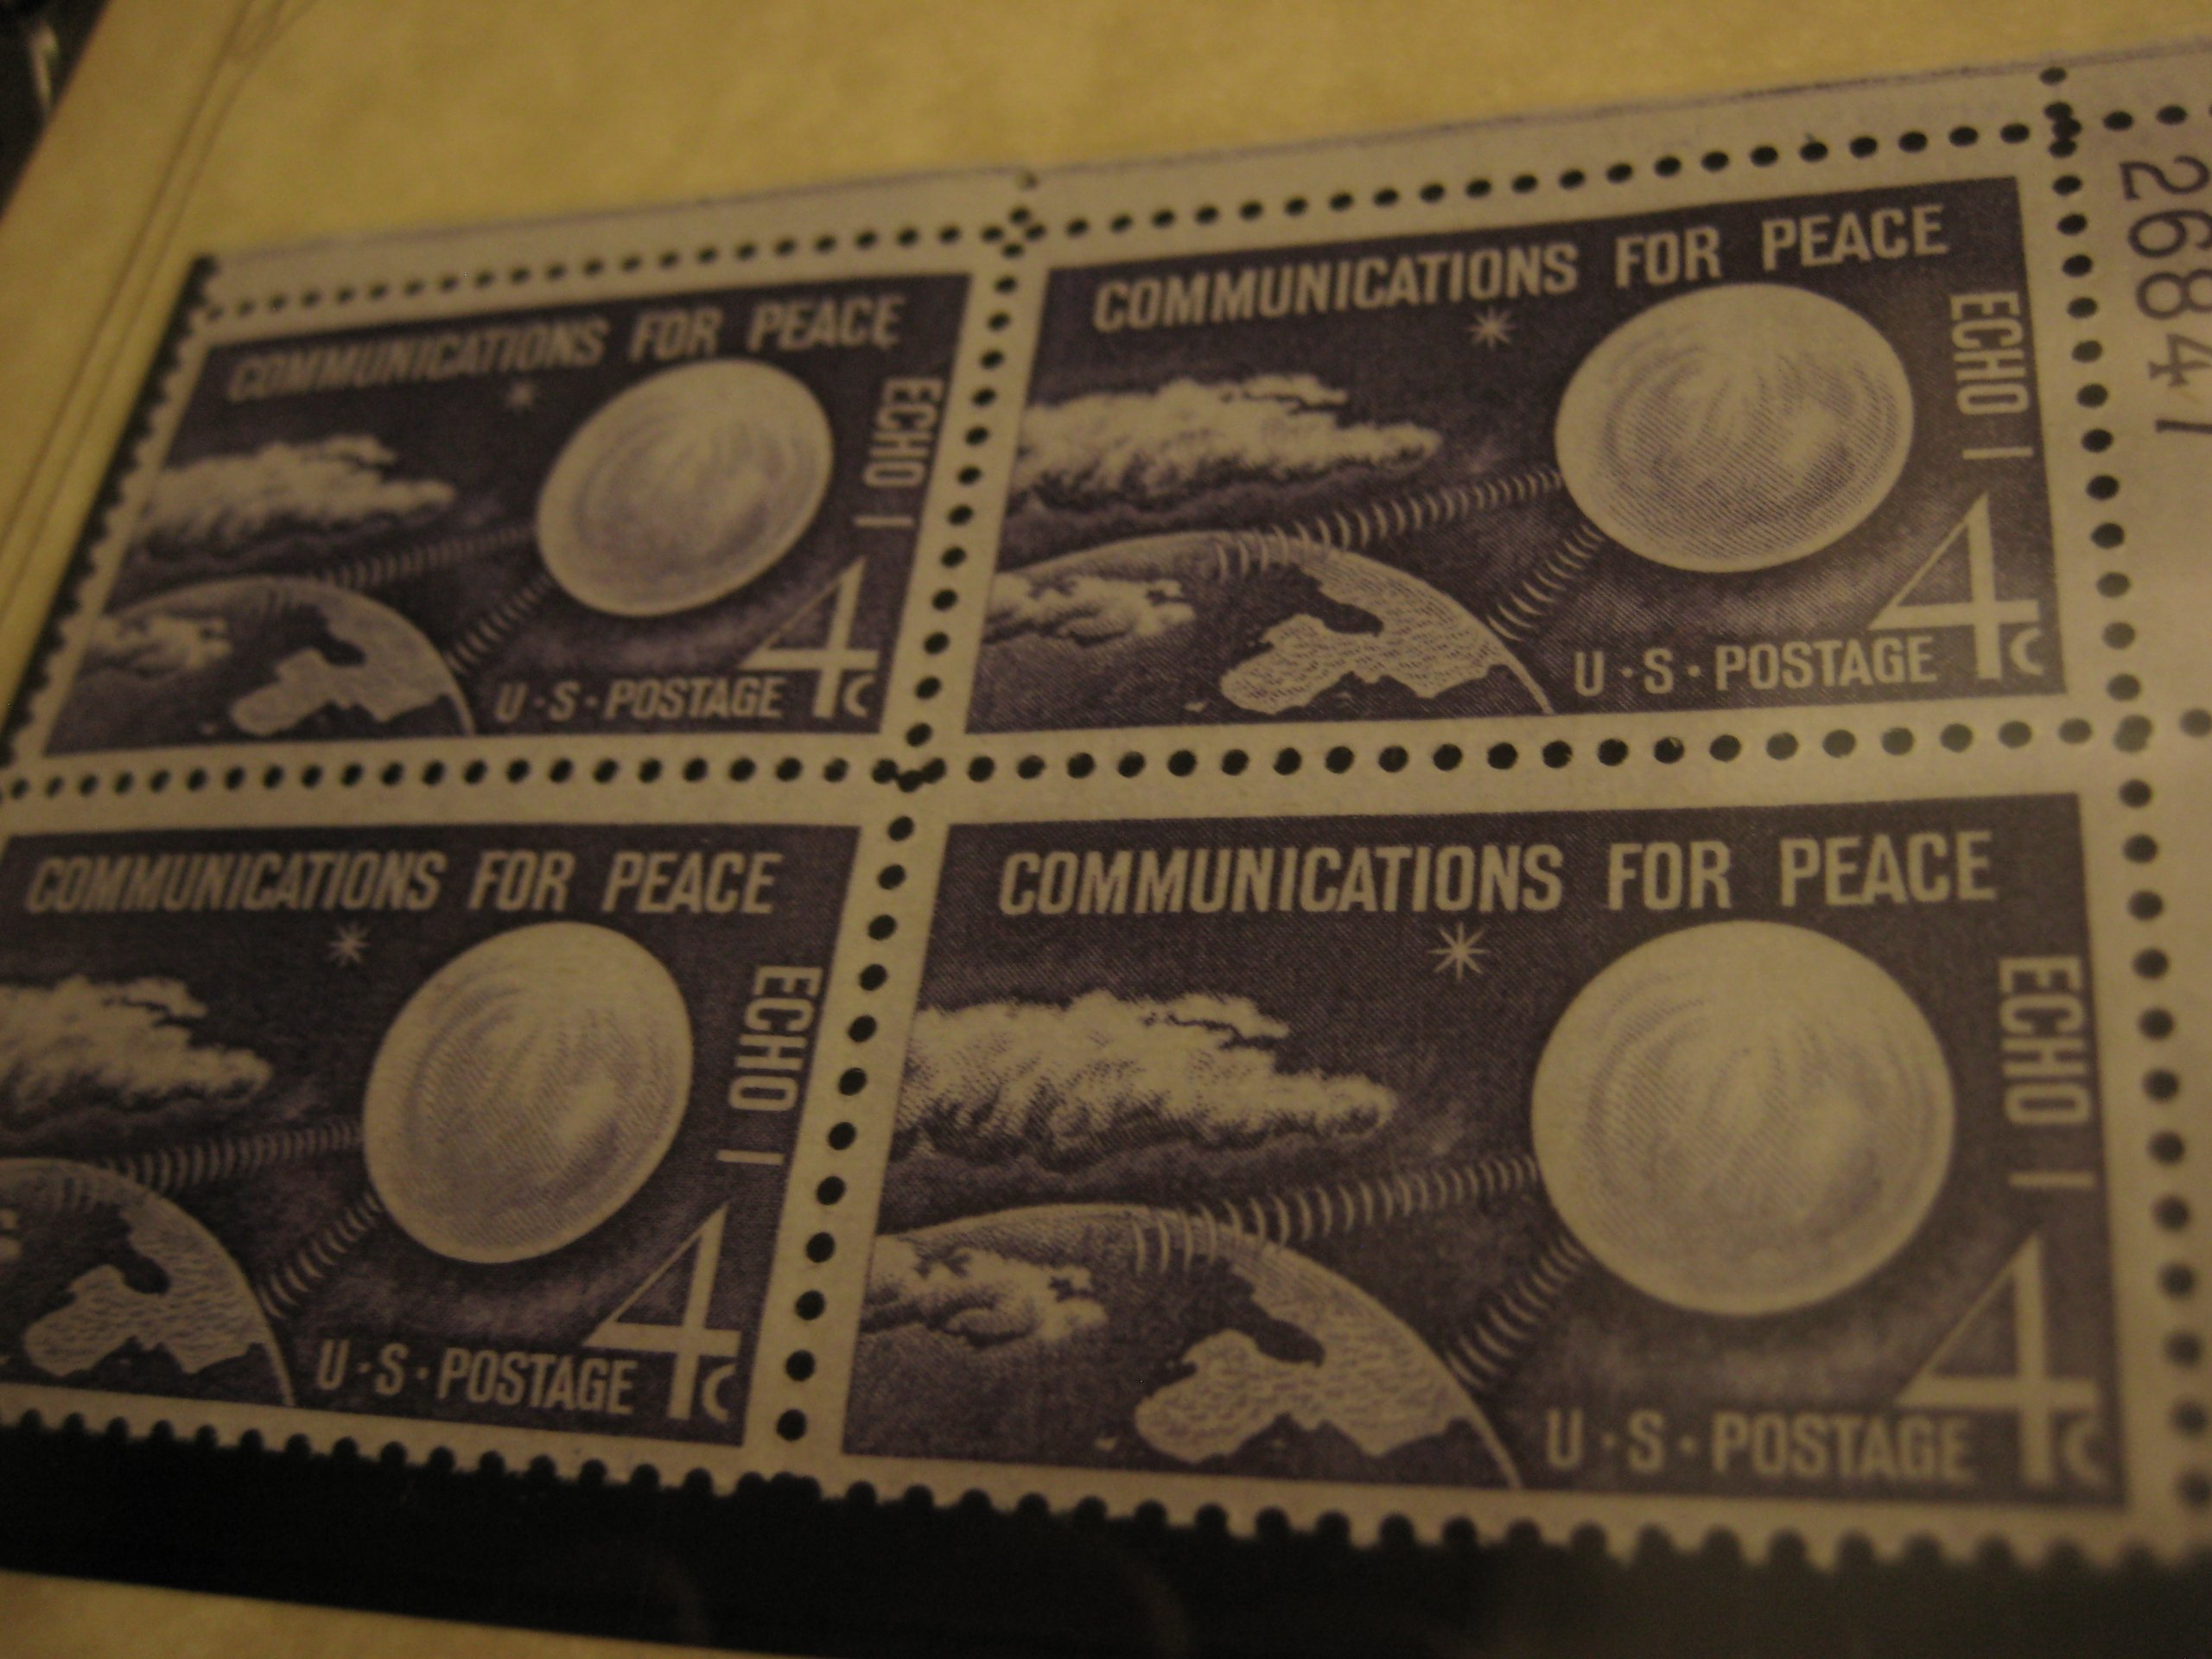 1960, Four Cent Echo I Communications For Peace Issue Postage Stamp, Block of 4